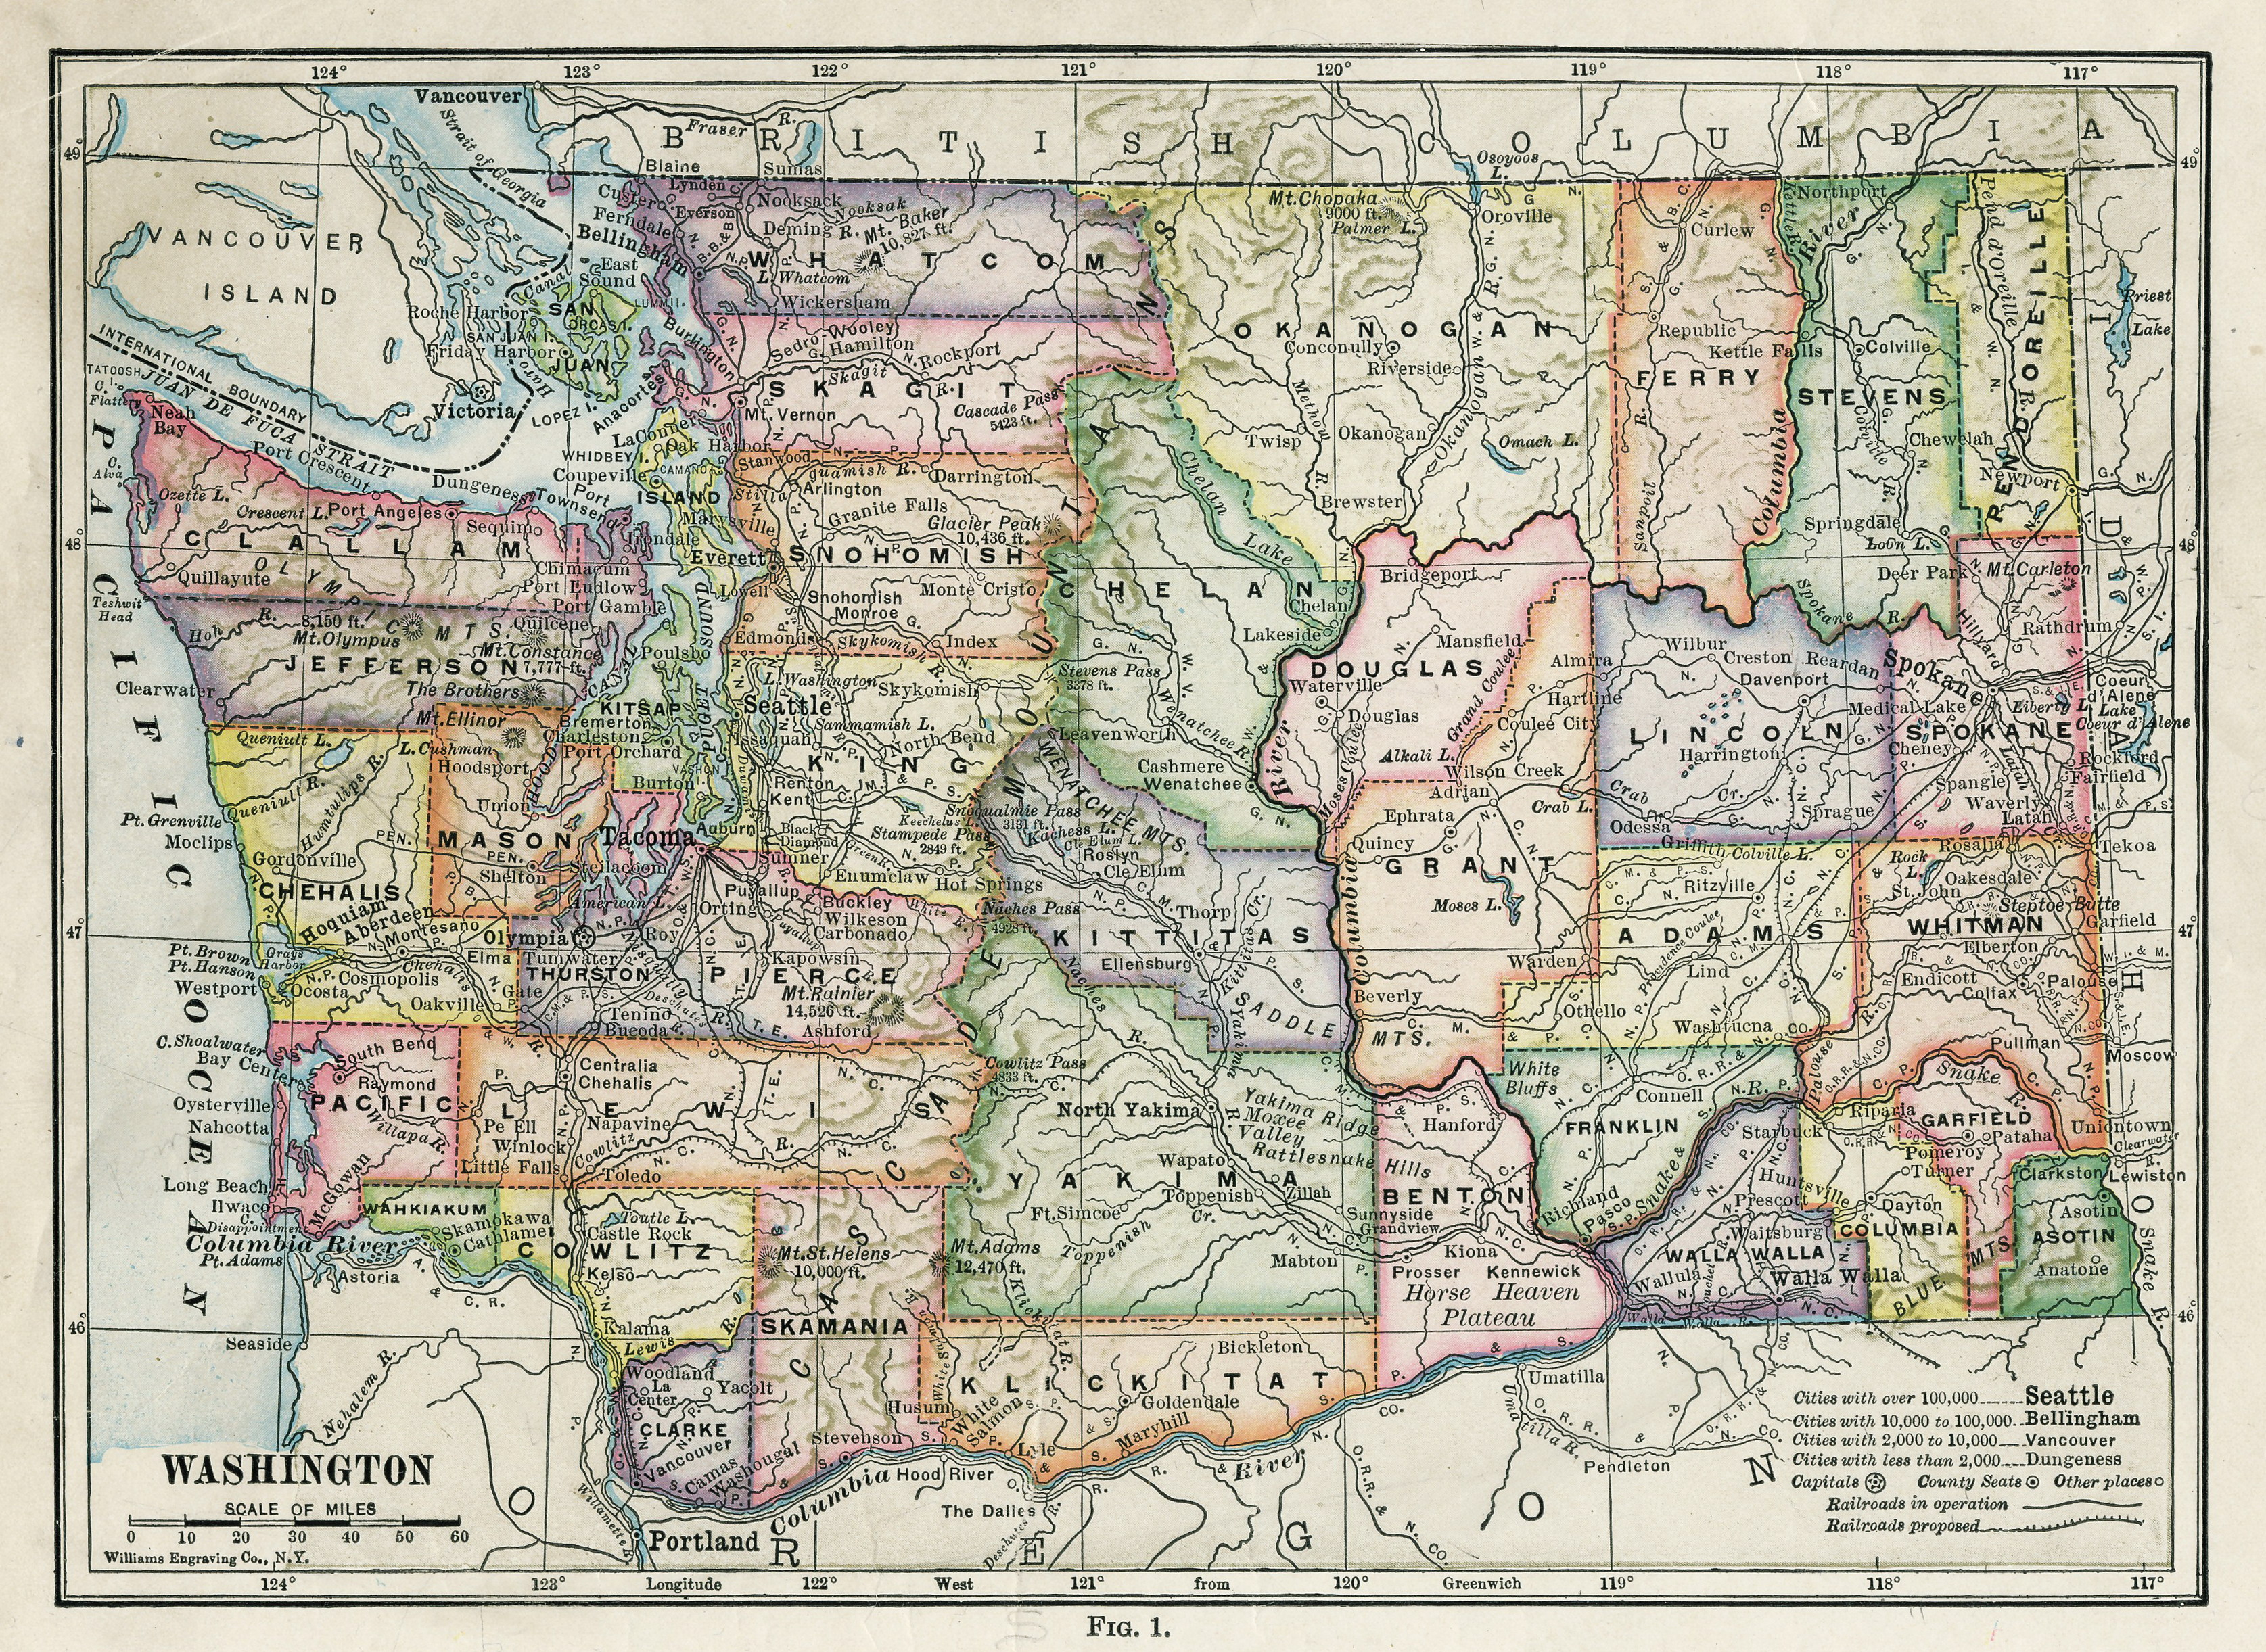 Washington State County Maps And Travel Information | Download Free - Free Printable Map Of Washington State